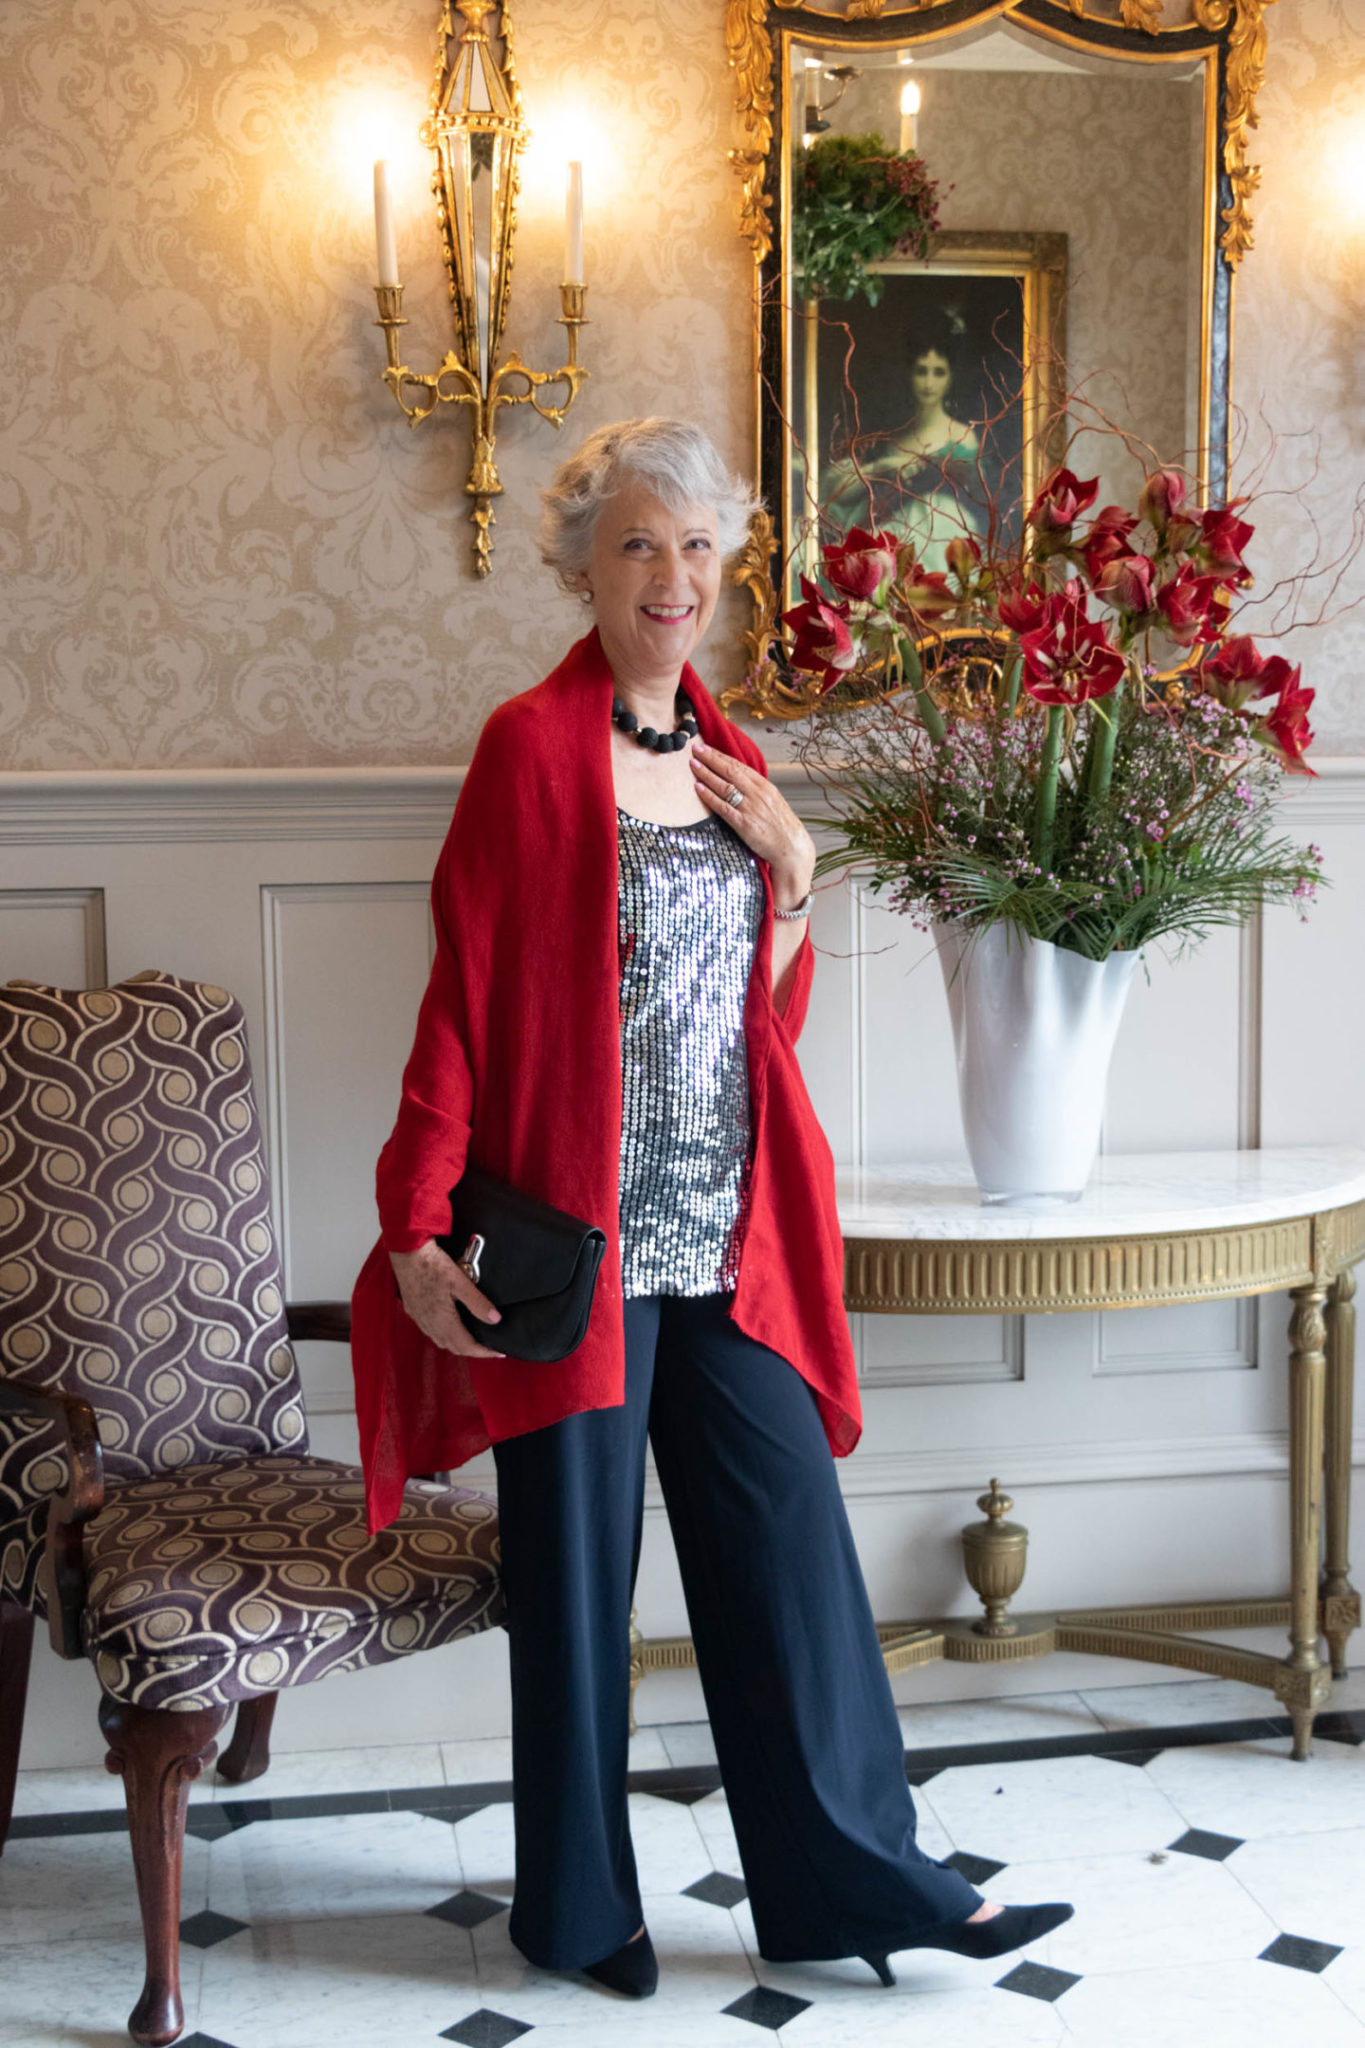 Sequin top, black trousers and red scarf